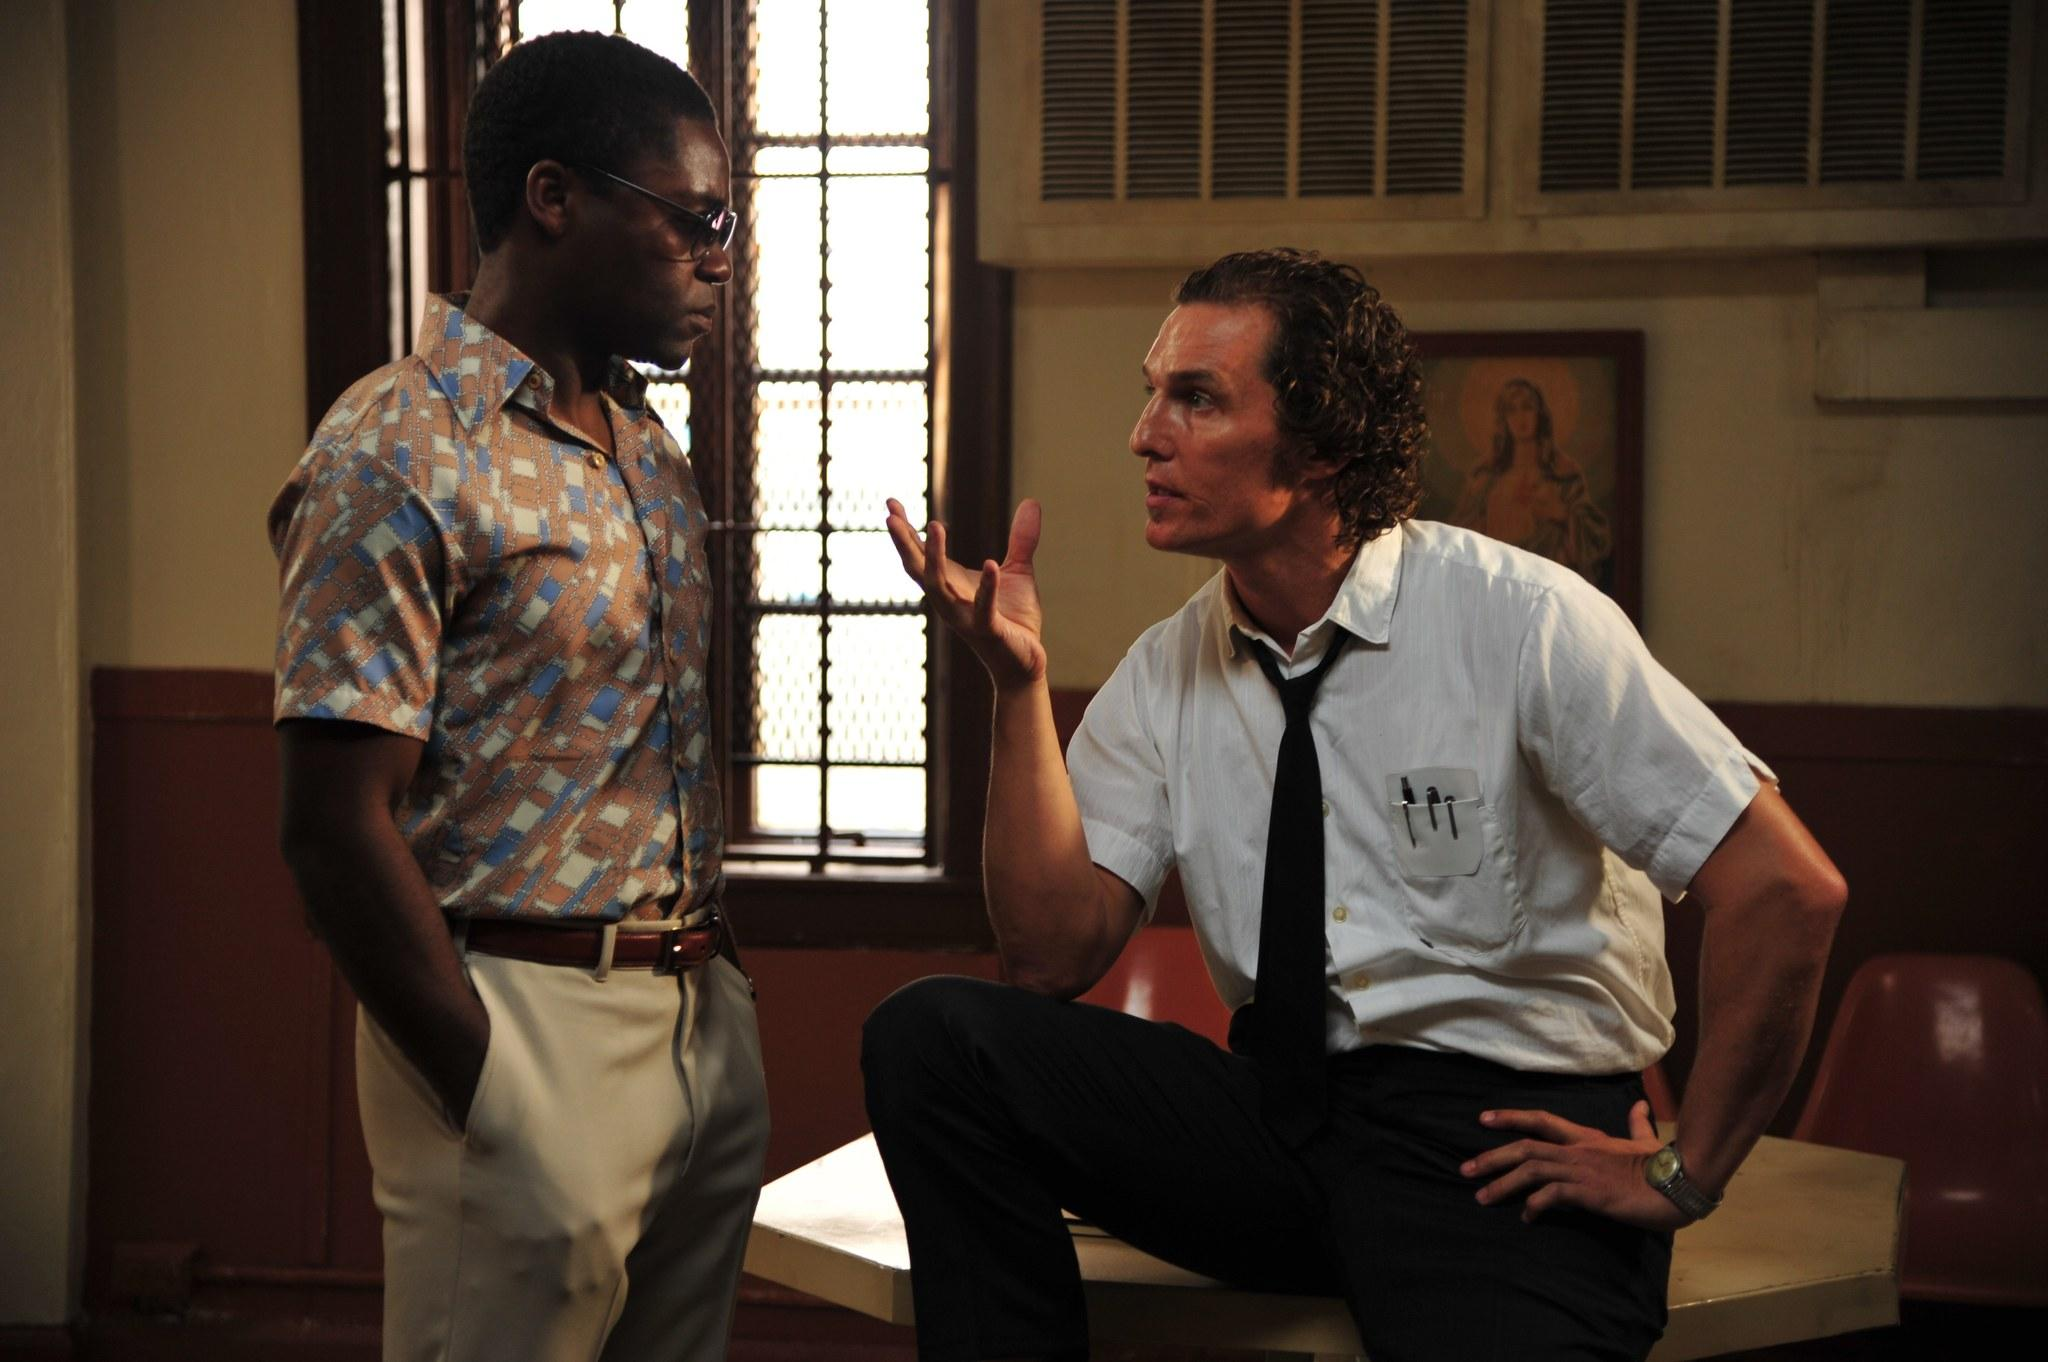 matthew-mcconaughey-david-oyelowo-the-paperboy